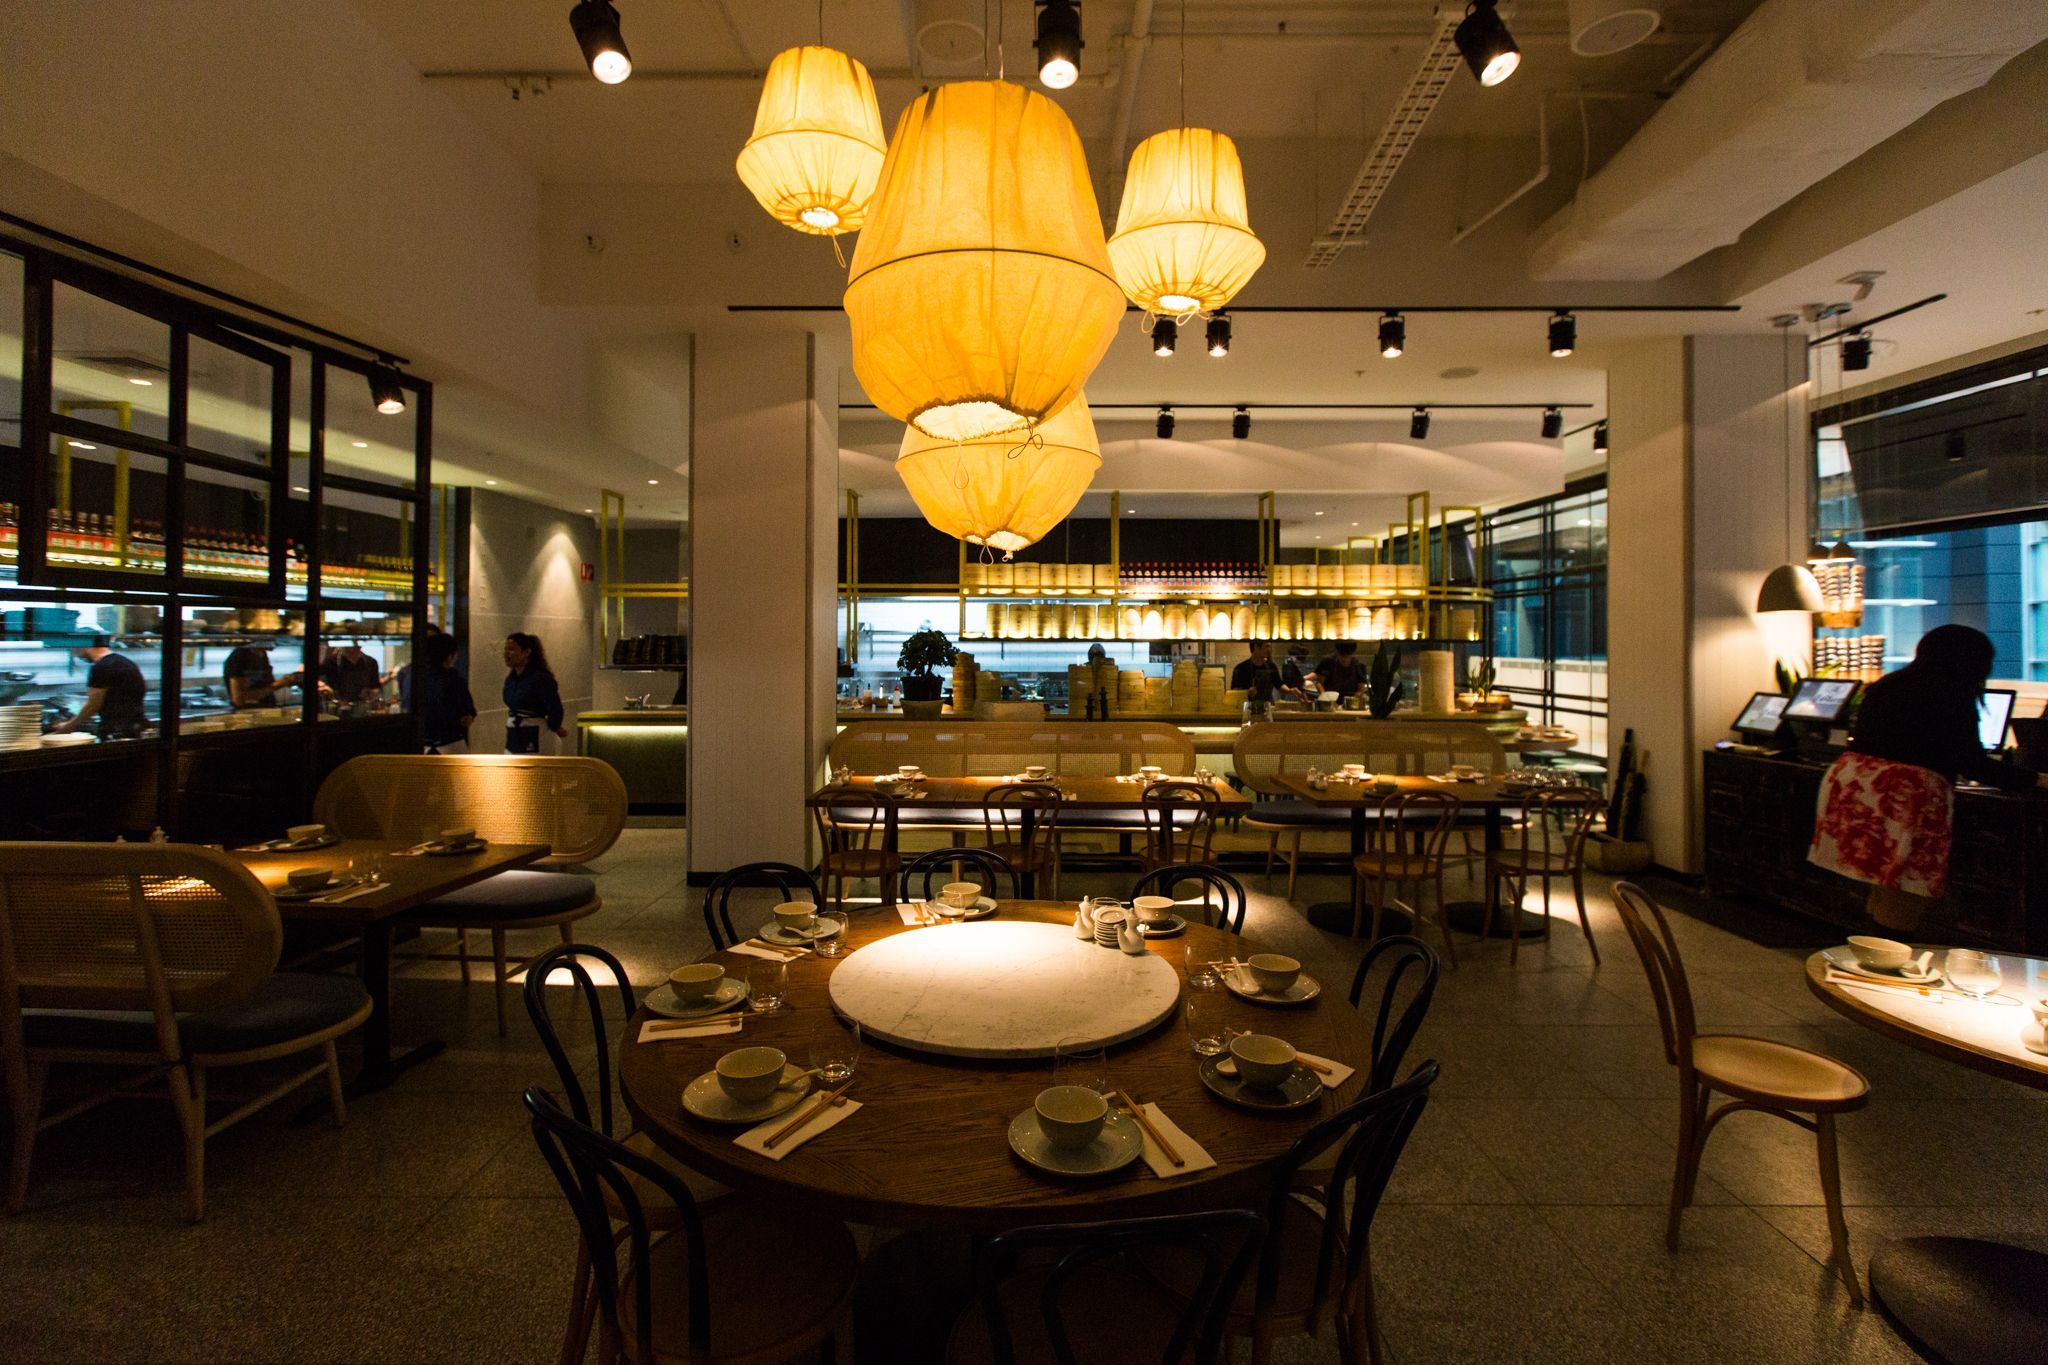 Lotus Restaurant At The Galeries Sydney Design By Ds17